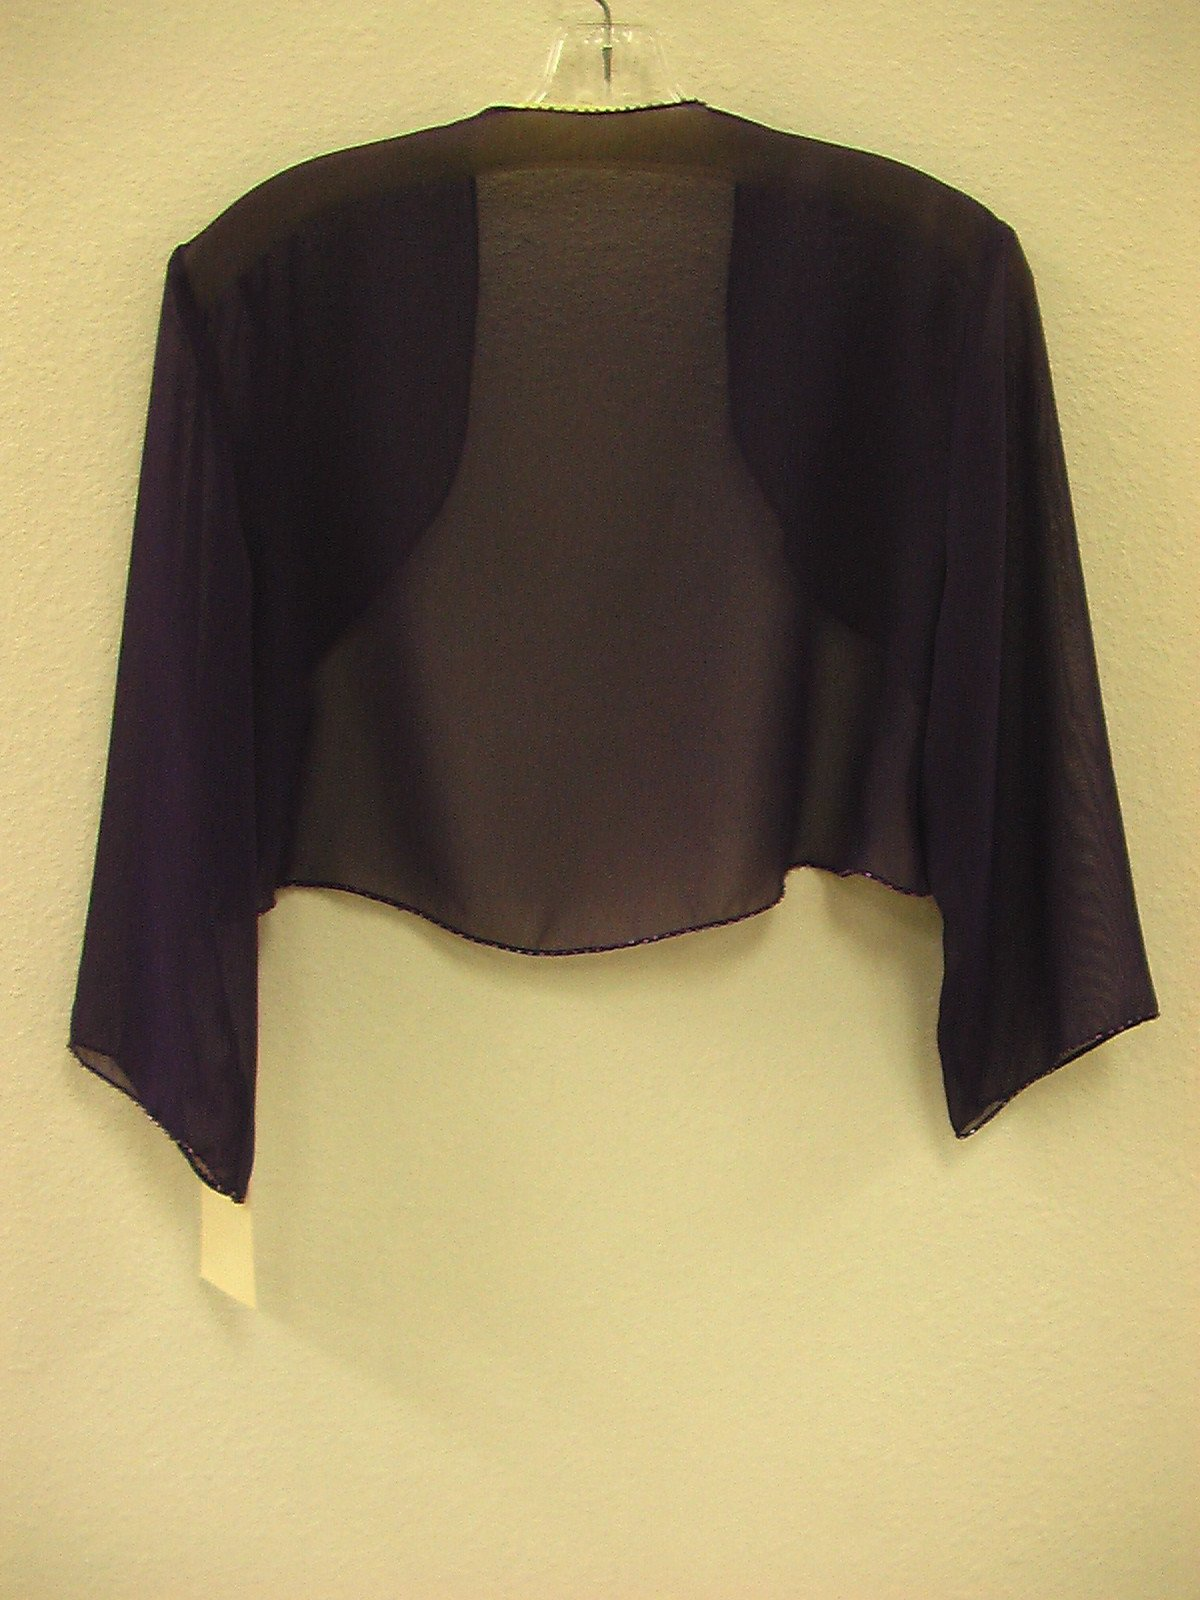 Pretty Maids J021 Grape size 16 In Stock Bridesmaid Jacket - Tom's Bridal